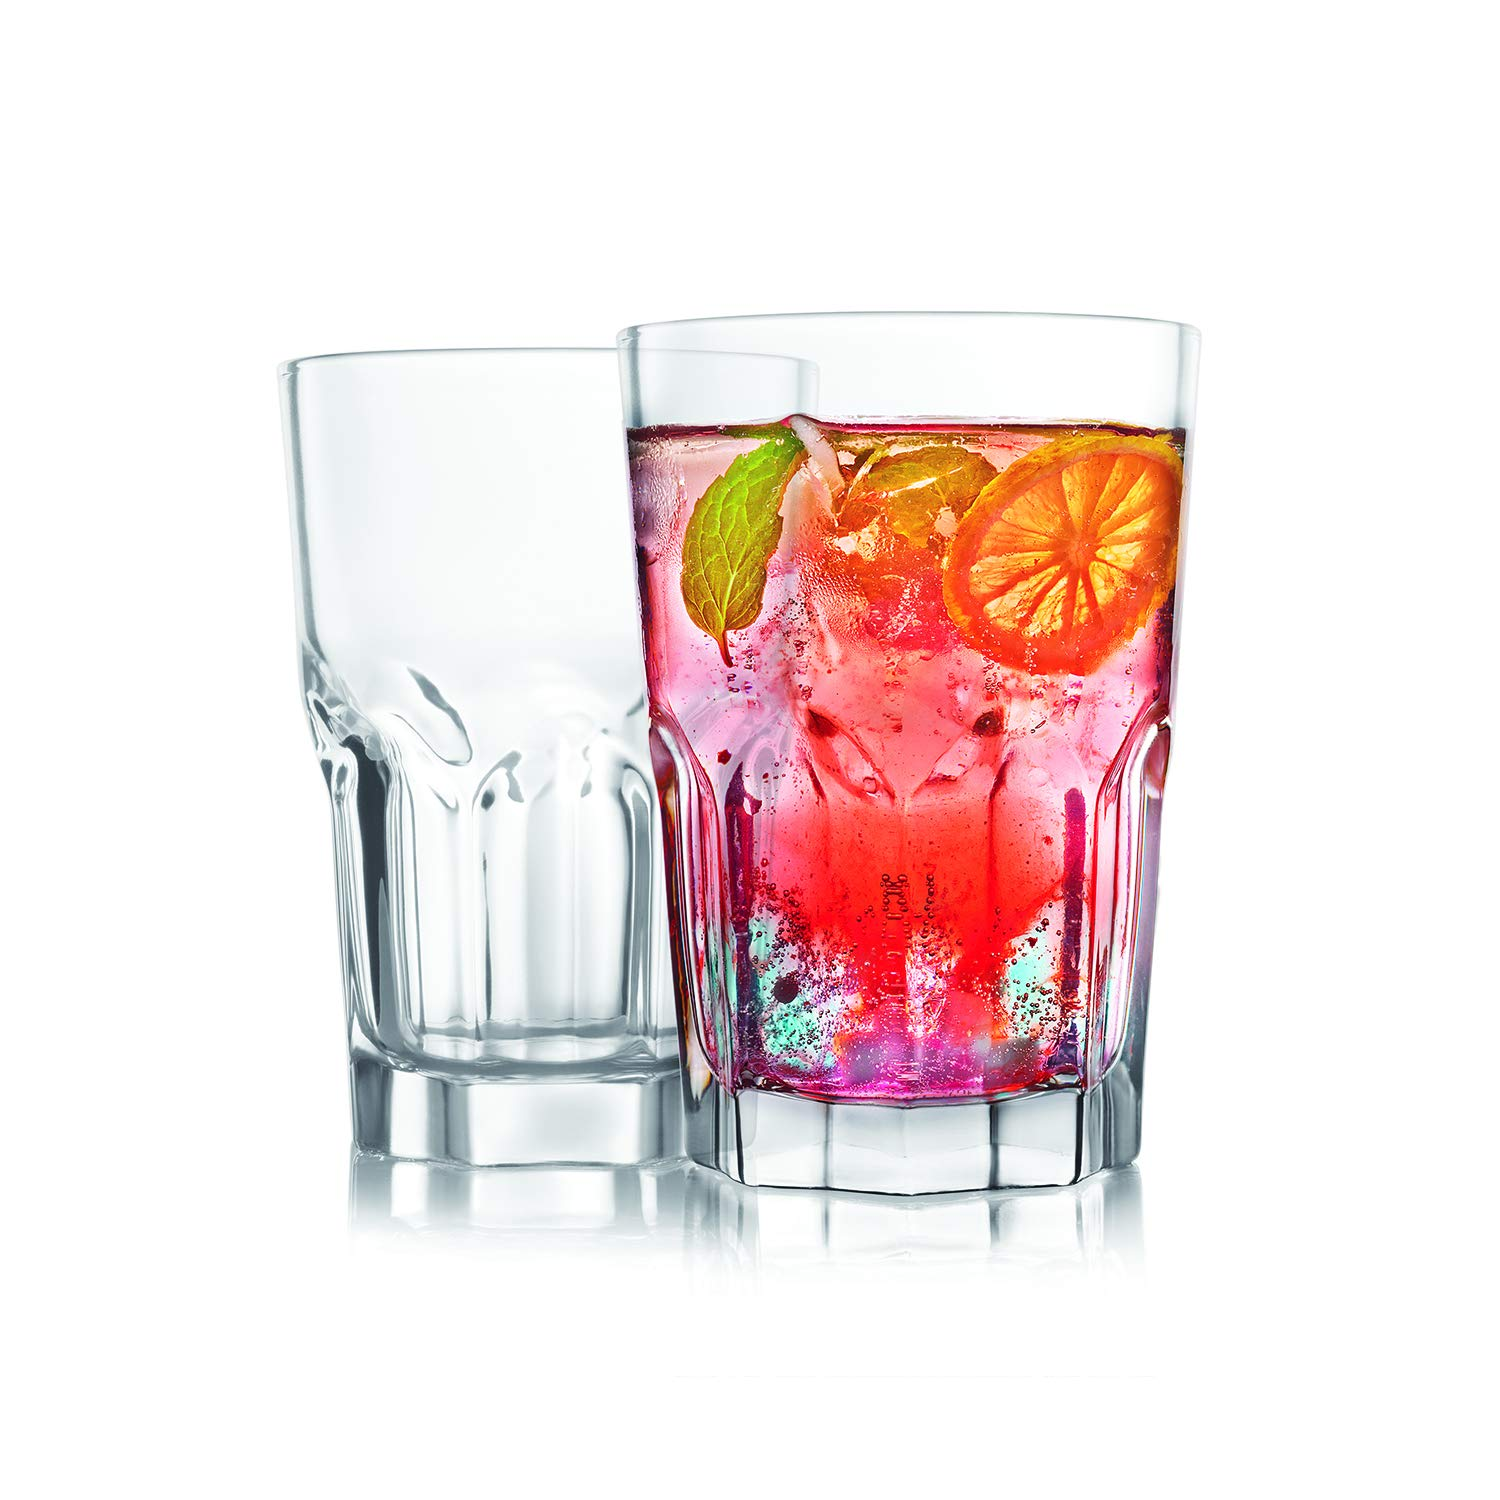 Cello Bello Glass Tumbler Set, 370 Ml, Set Of 2, Transparent